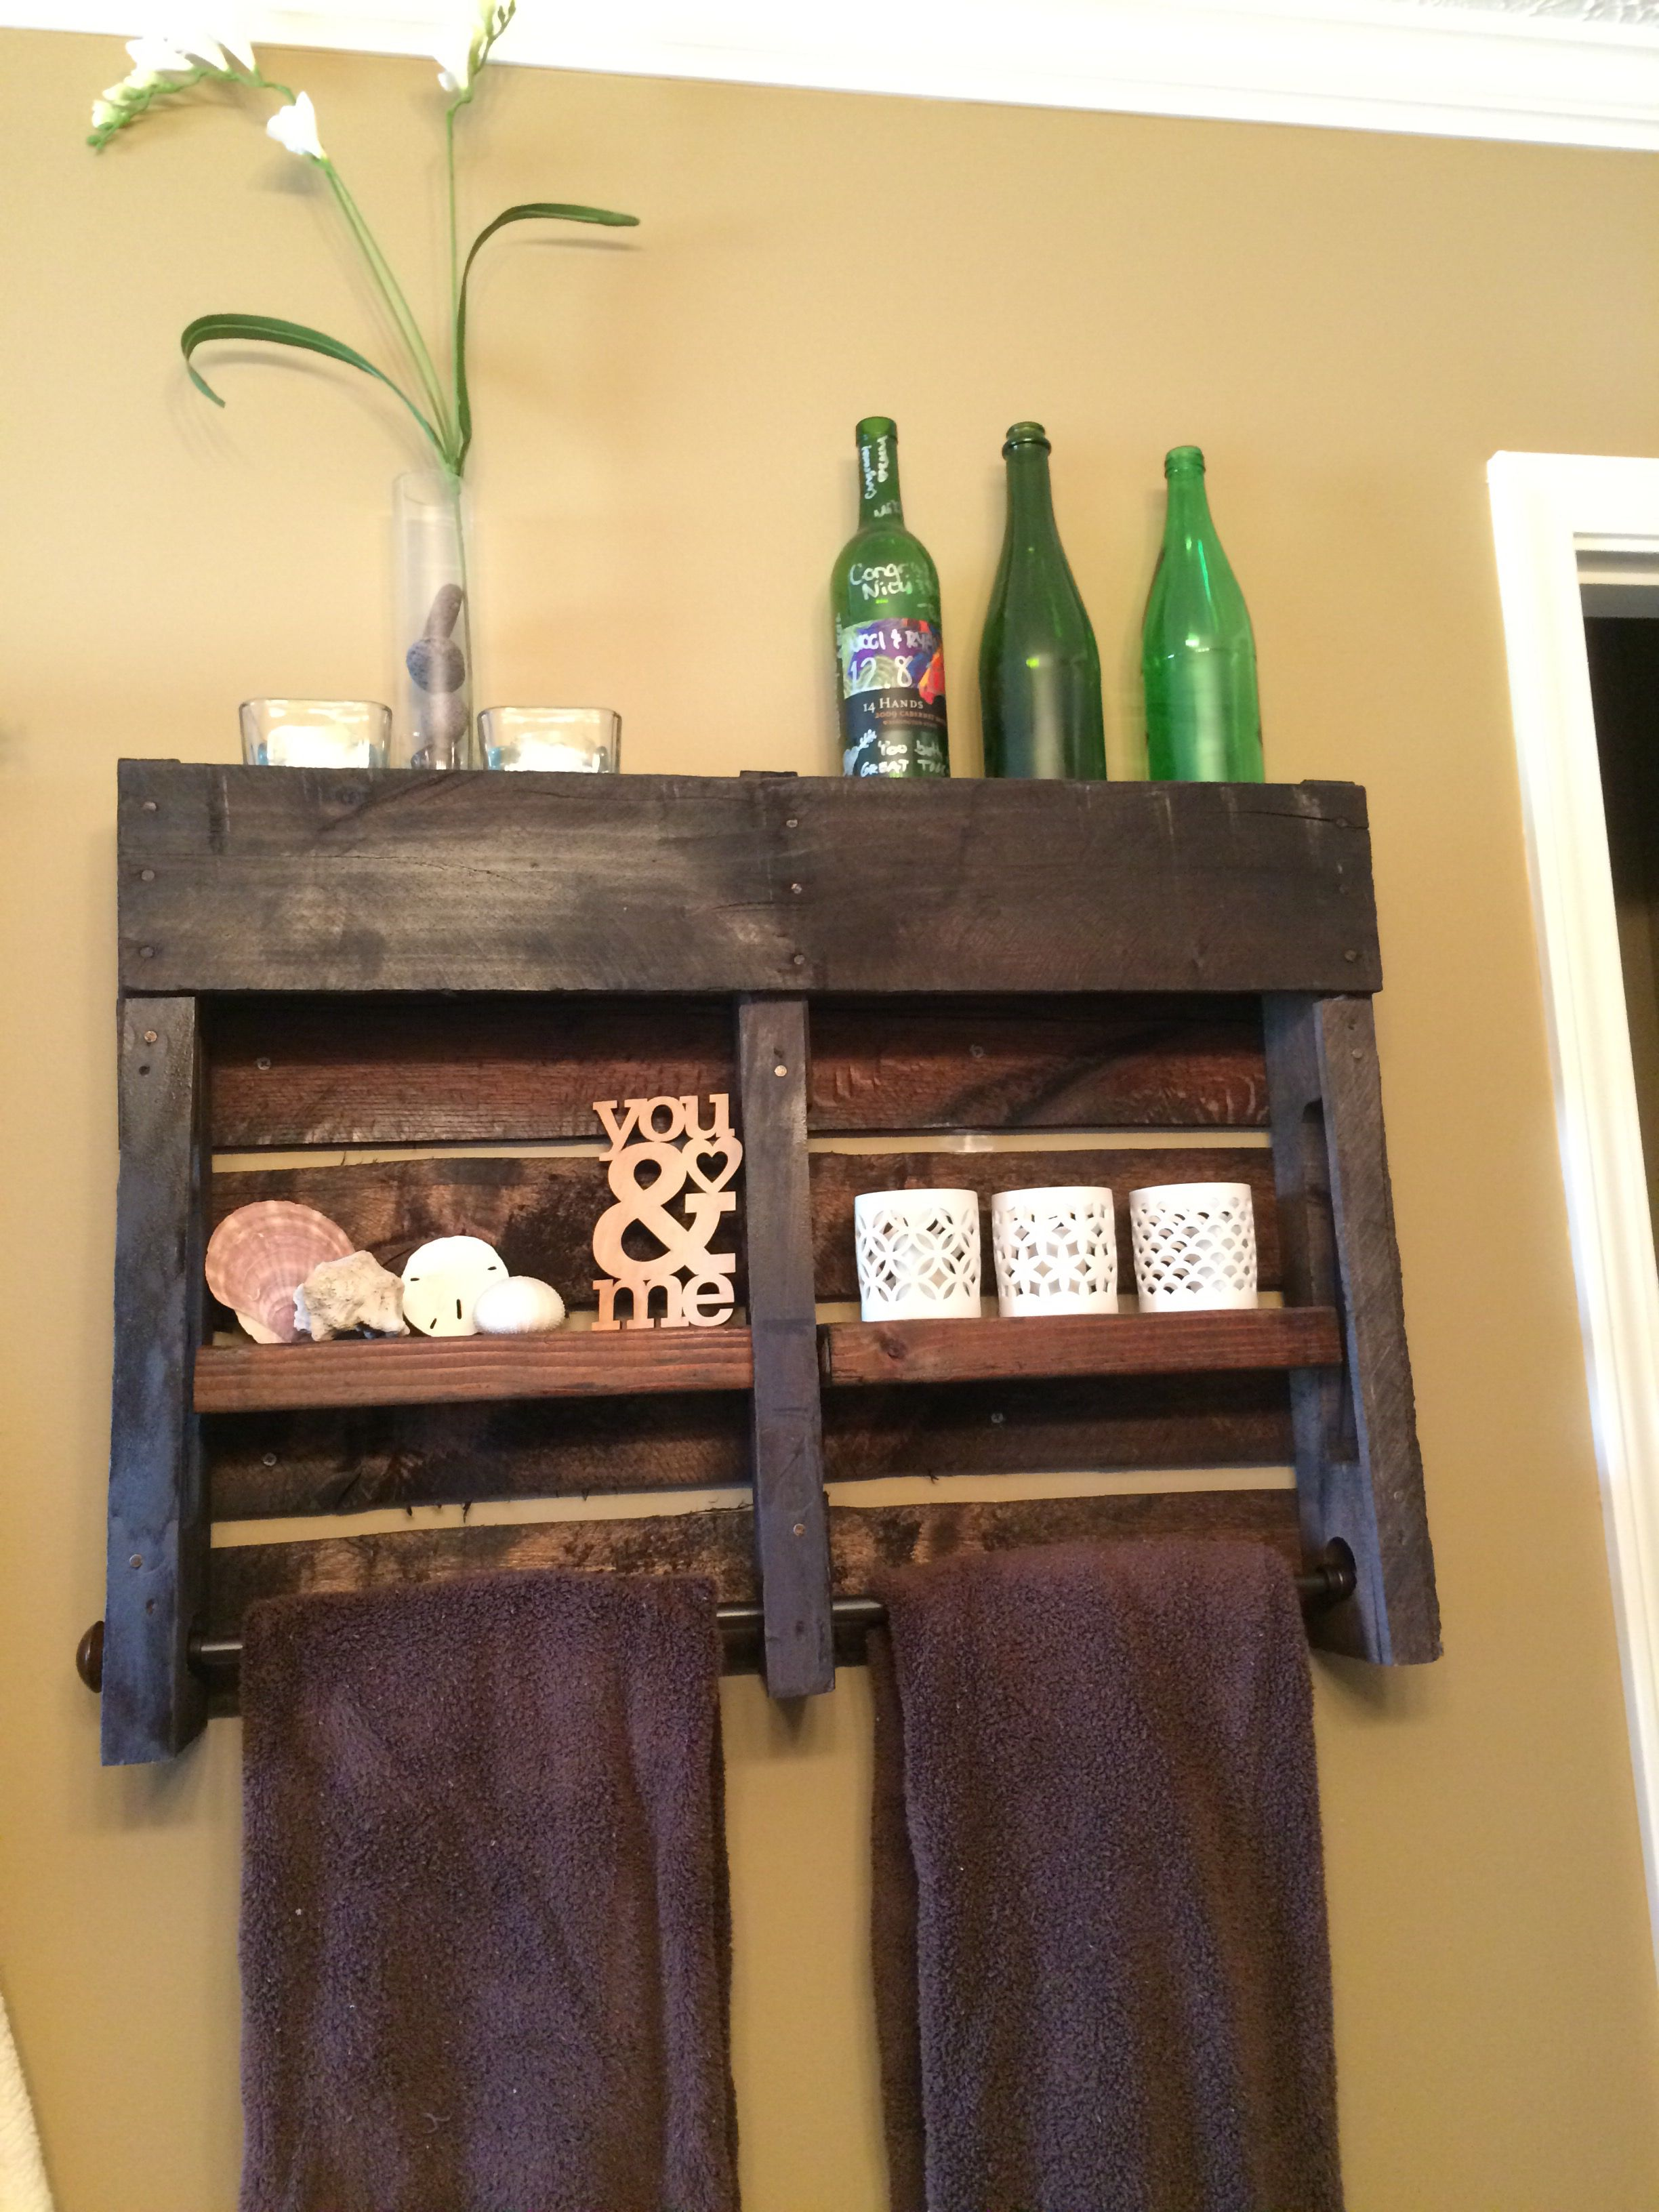 My Diy Version Of A Pallet Towel Holder